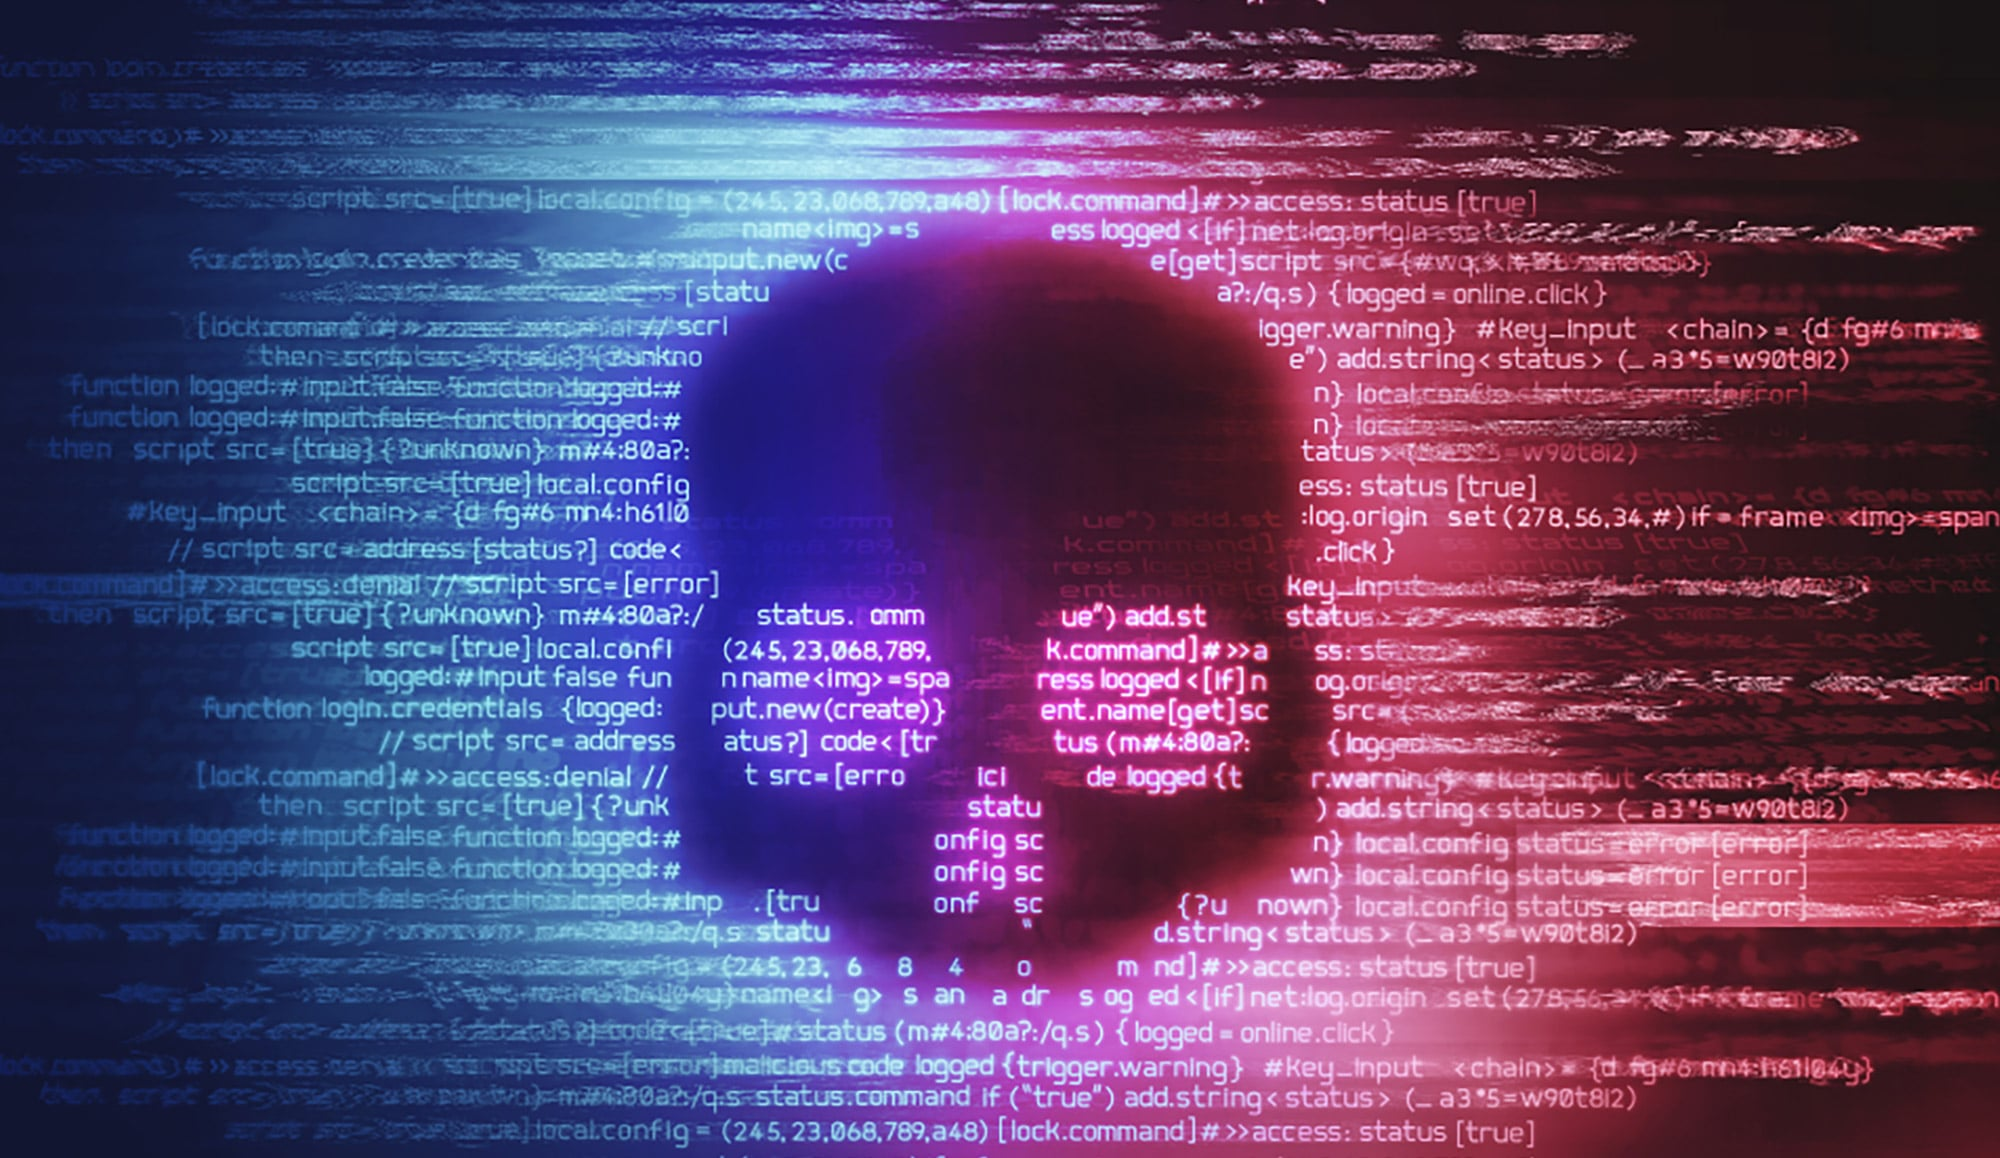 Image of a skull shadow over code to depict ransomware.